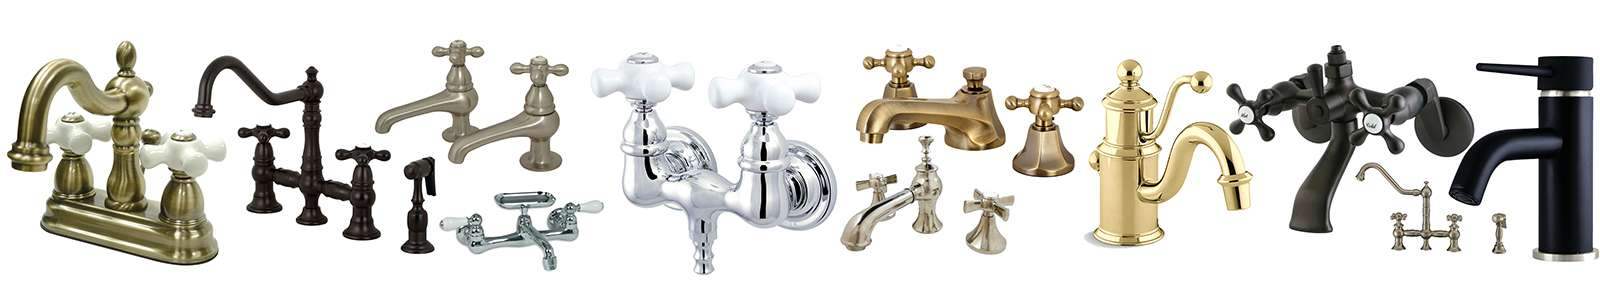 Separate Hot & Cold Faucets